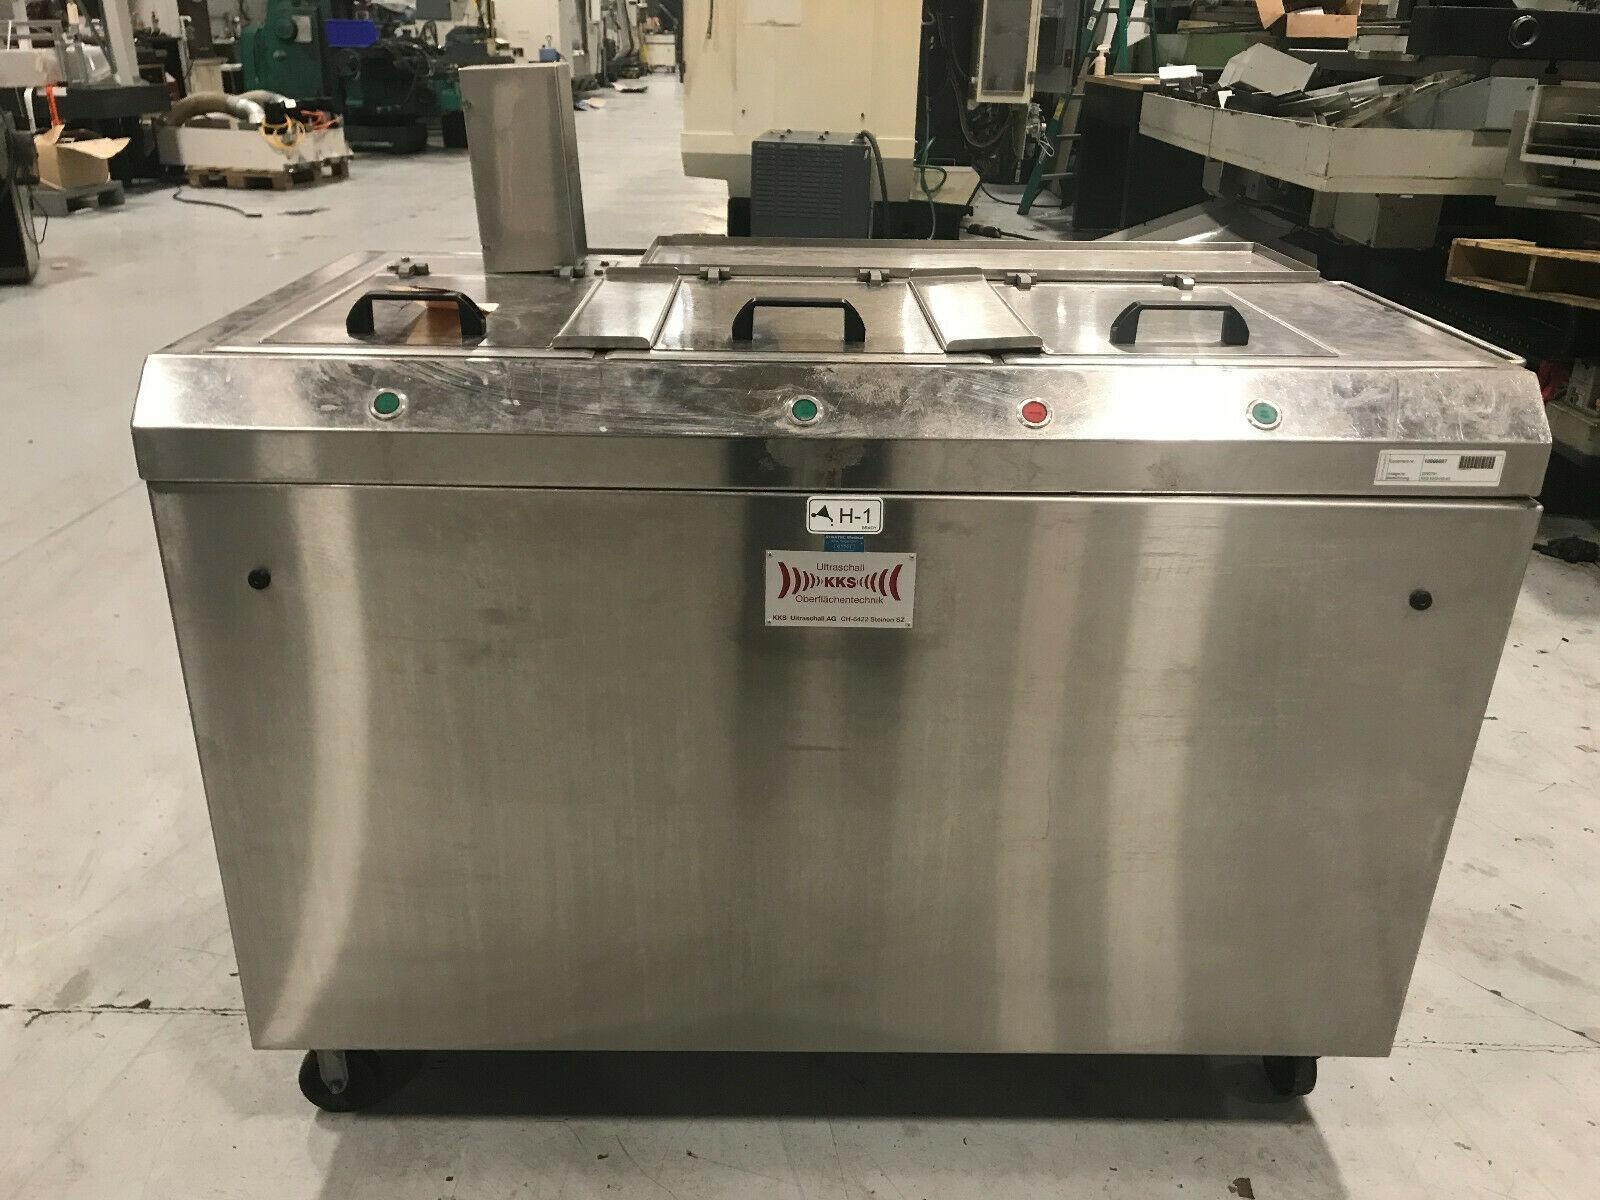 KKS Ultraschall Three Stage Ultrasonic Cleaner